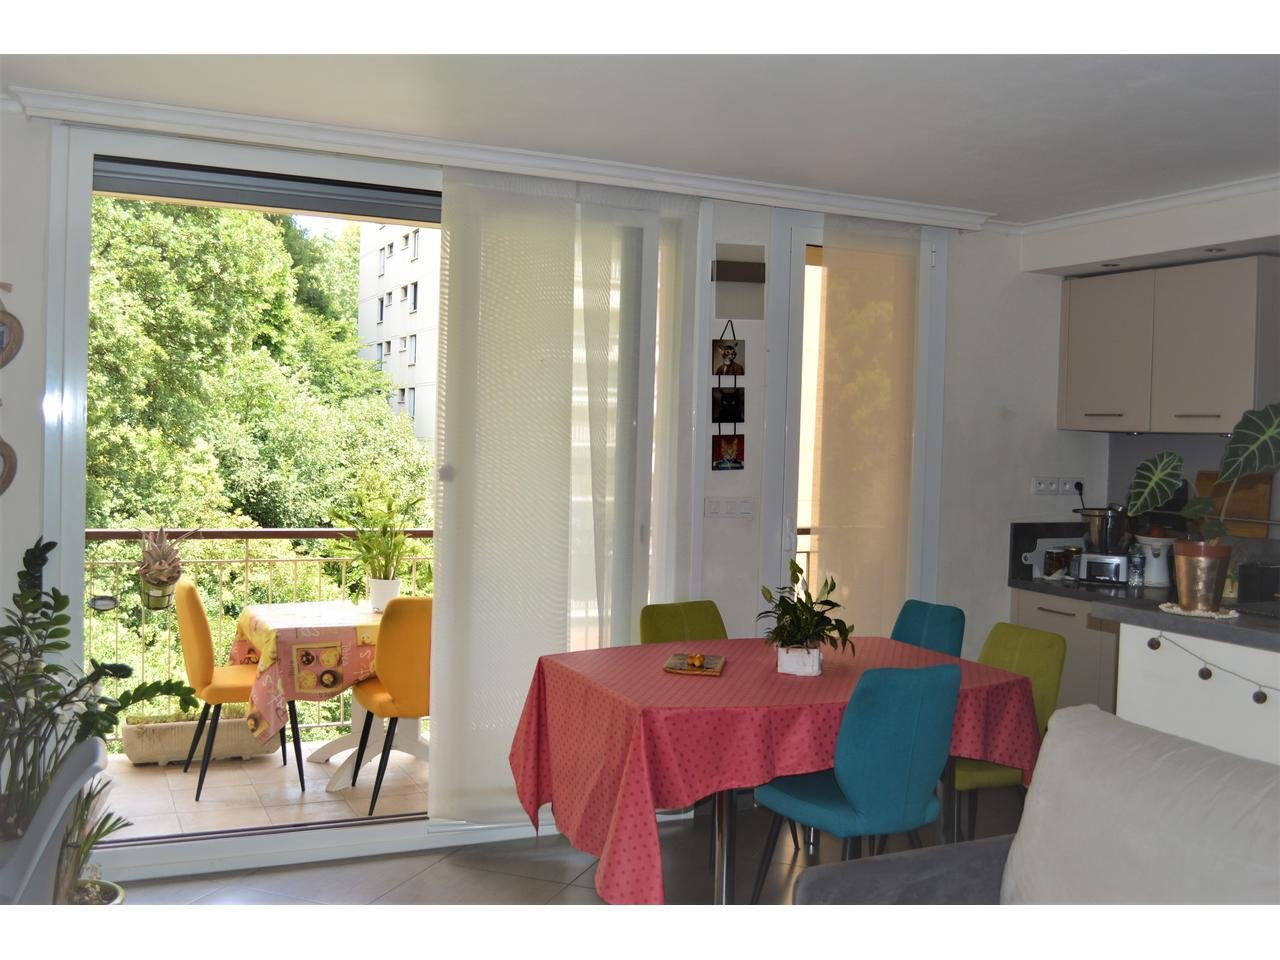 Appartement  3 Rooms 58m2  for sale   265000 €